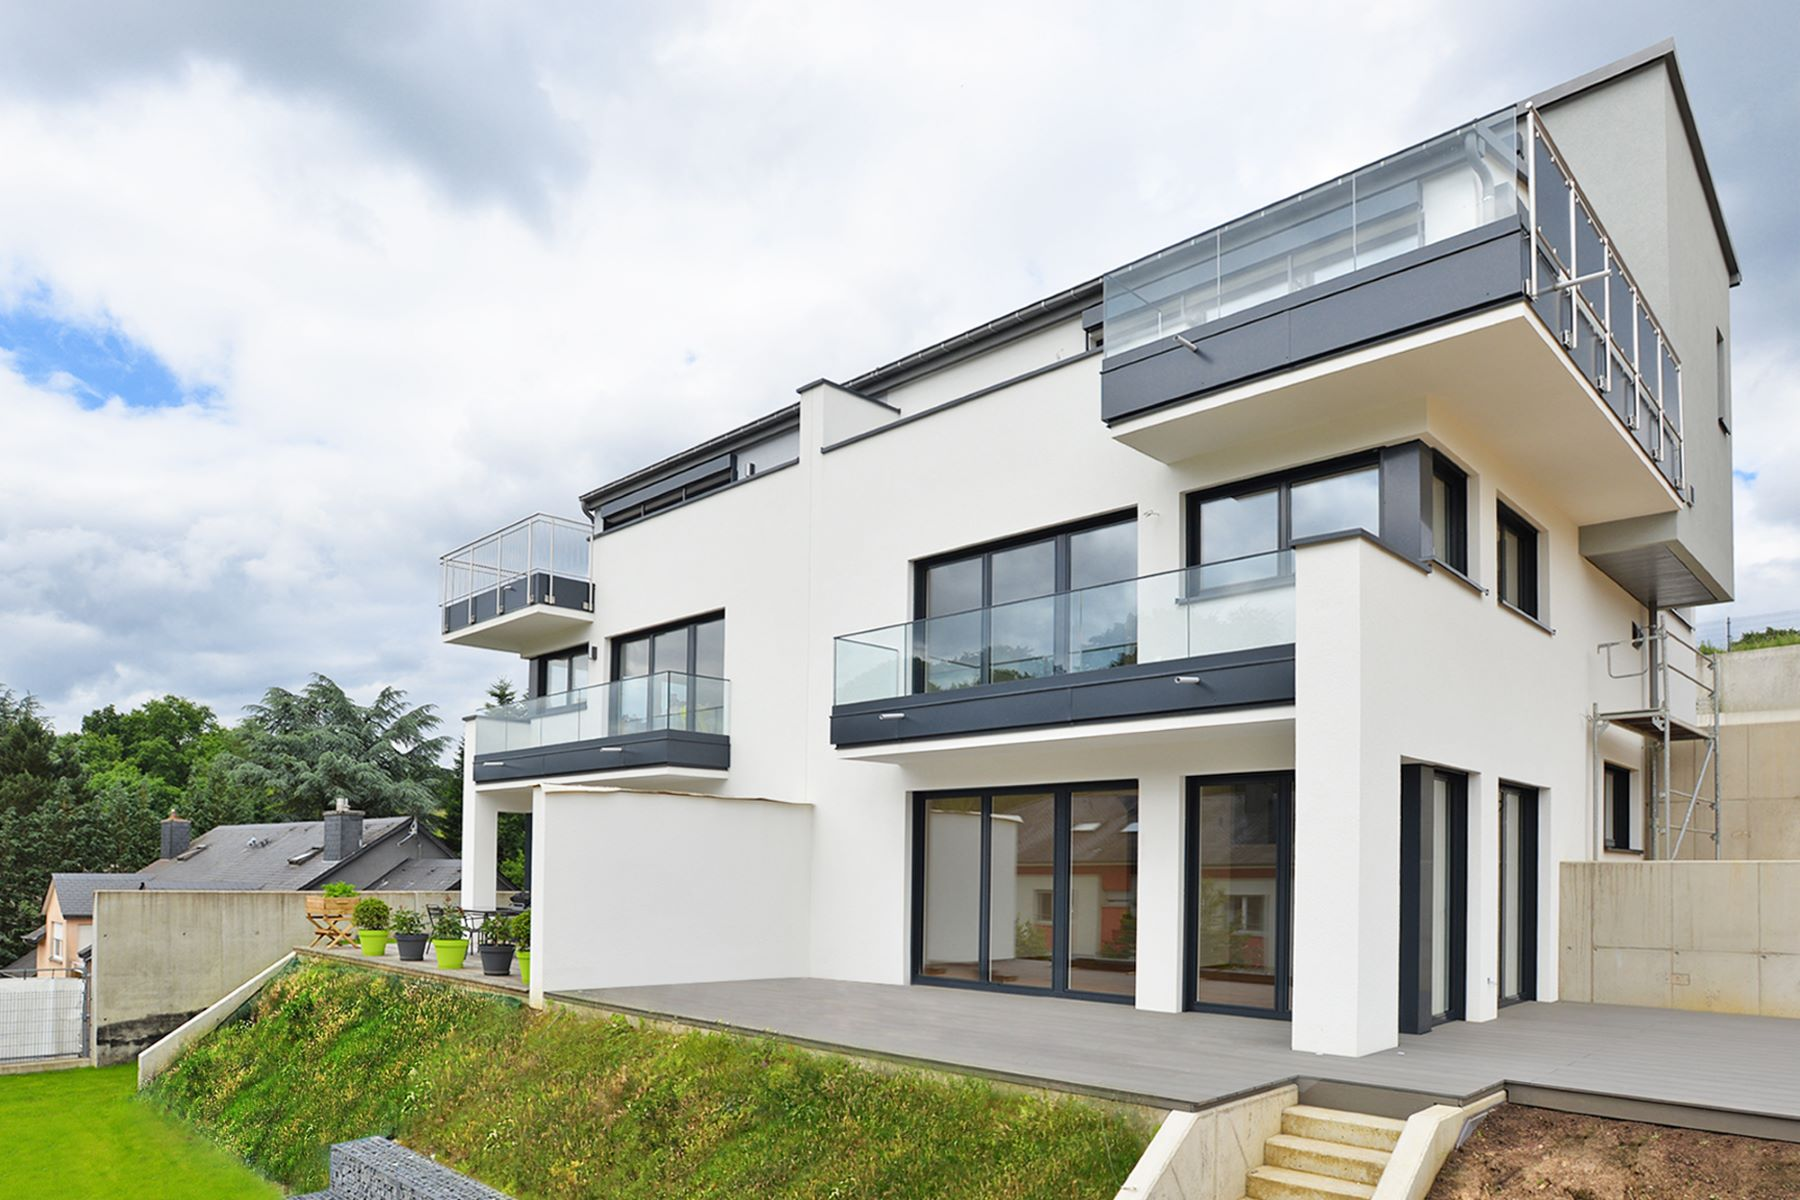 Single Family Home for Sale at Belle maison à Strassen Strassen, 2410 Luxembourg